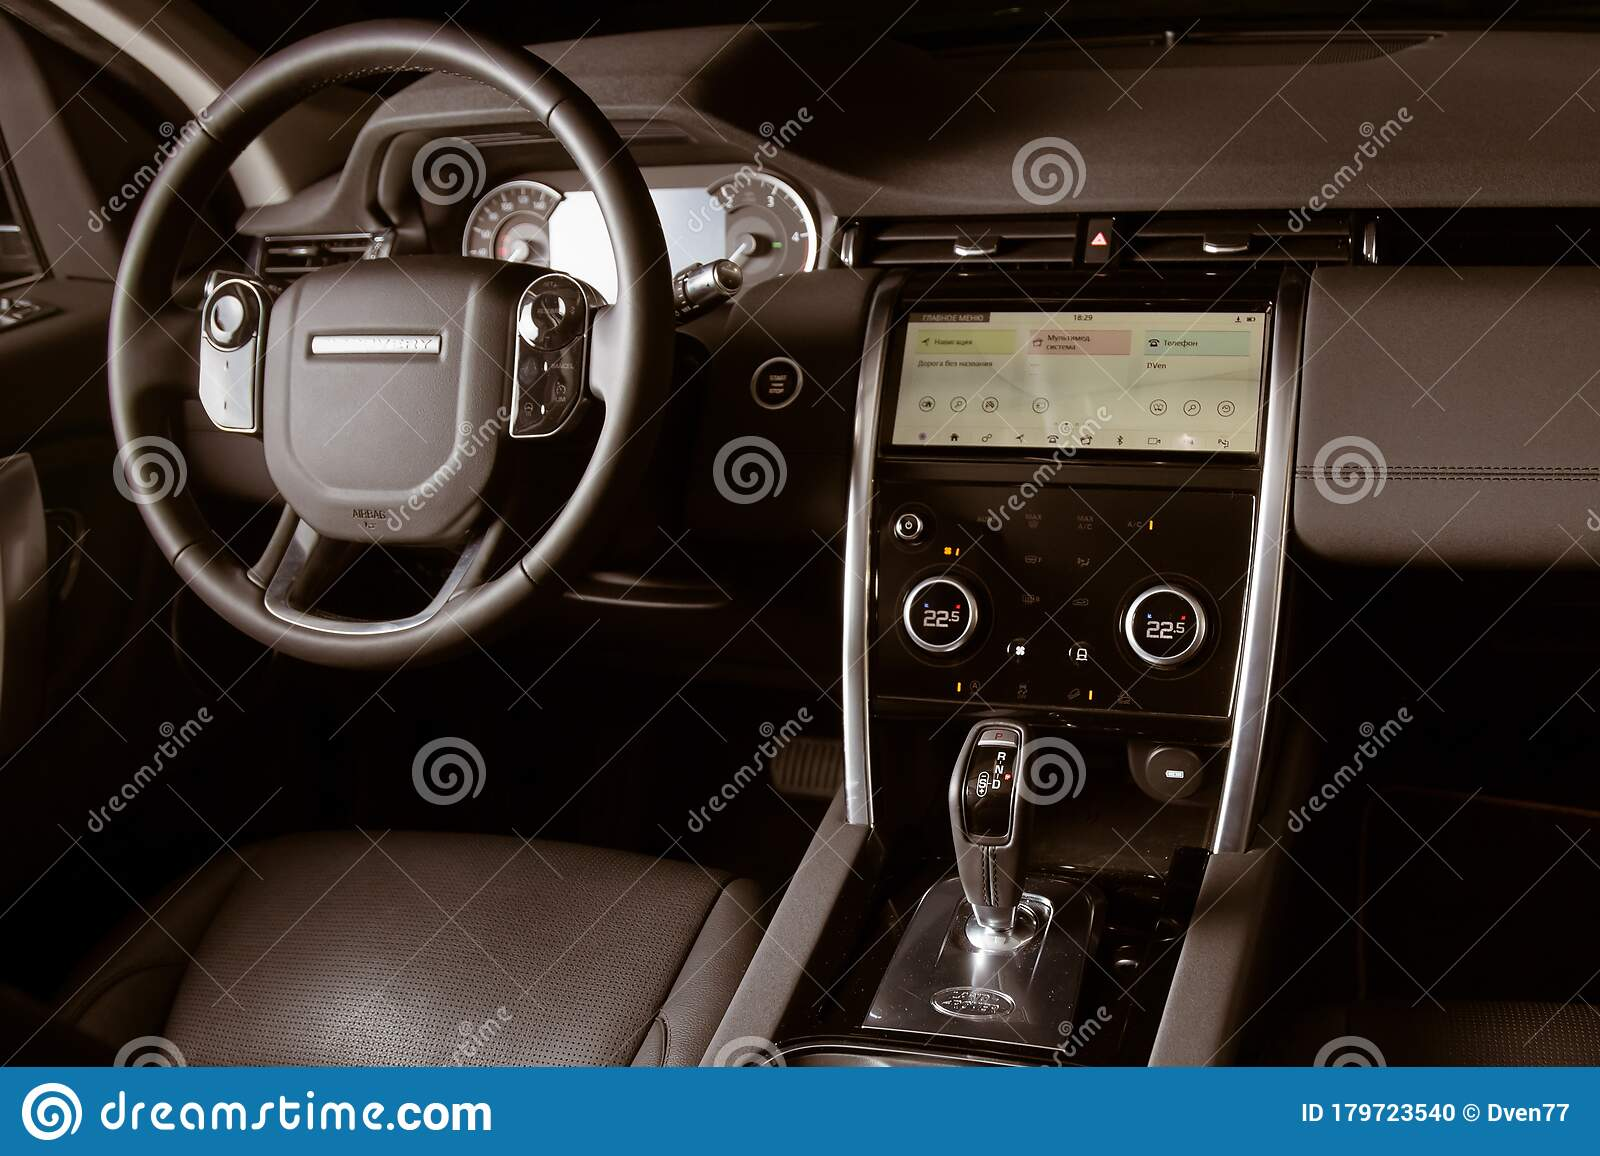 Moscow Russia December 20 2019 Black Leather Interior Of Premium England Suv Land Rover Discovery Sport 2020 Two Lcd Editorial Image Image Of Rover Modern 179723540